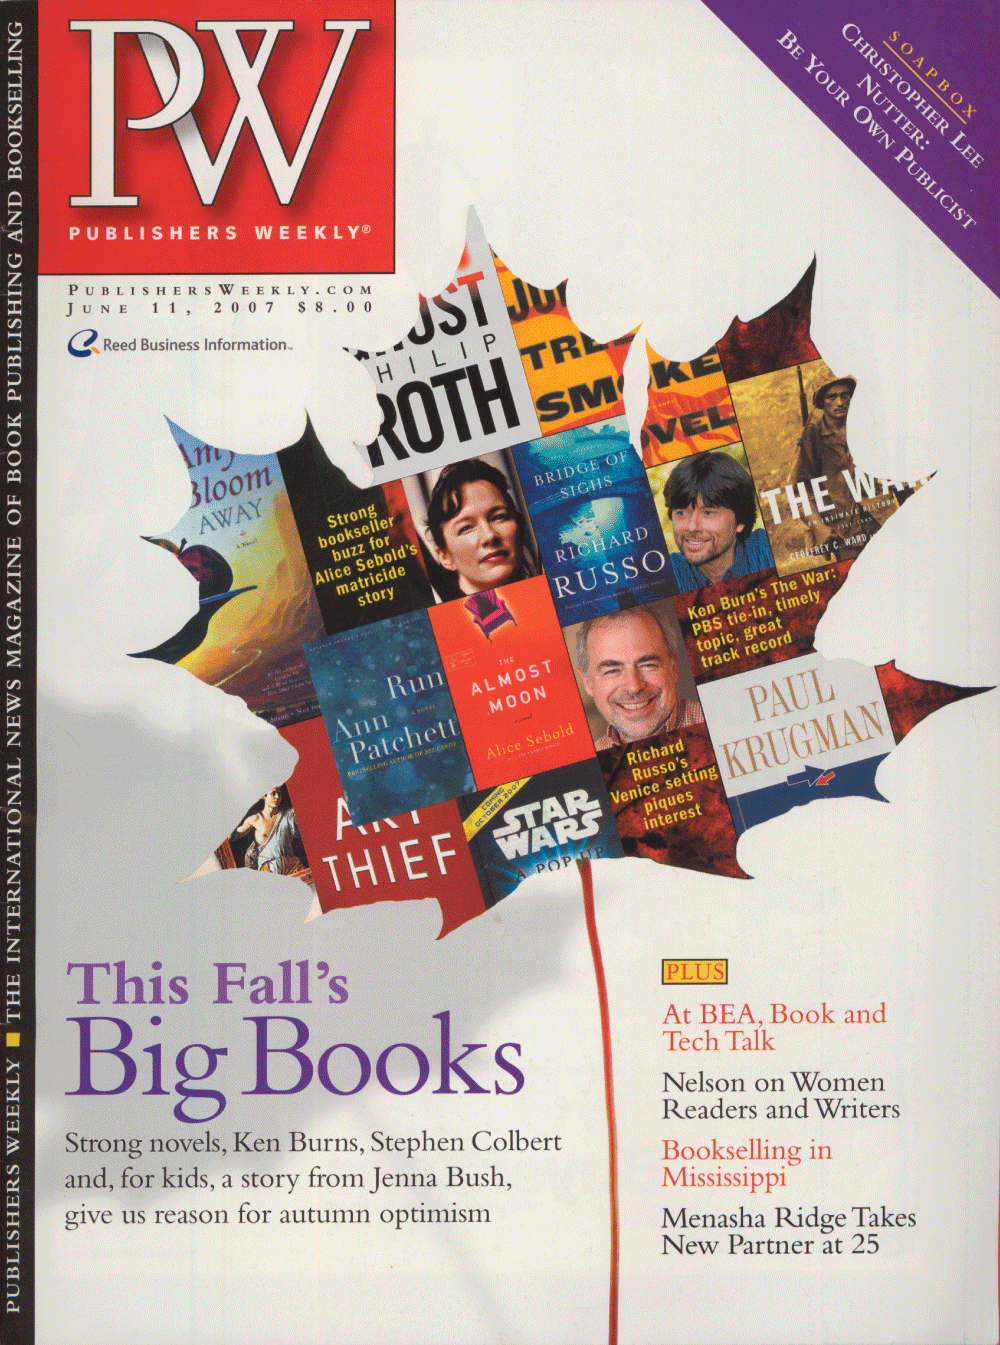 nutter_writing_publishers_weekly_june_2007_1.png